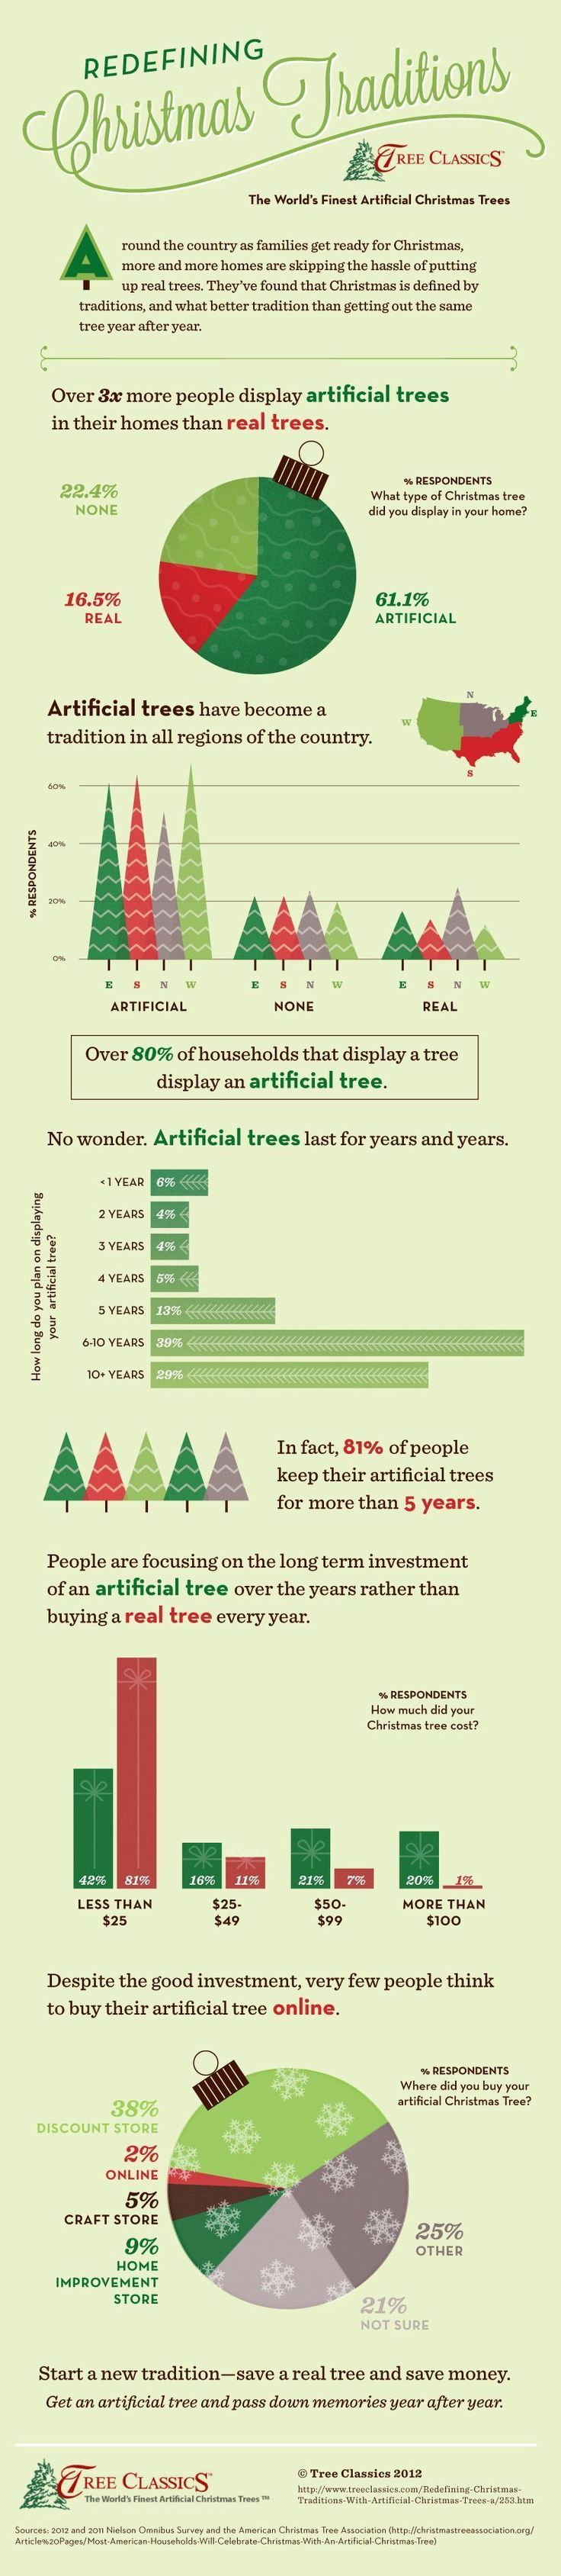 Christmas traditions are continually refined over time and the passing of many generations. An increasing among of families are skipping the tradition of putting up a real tree during this holiday season and going for an artificial tree. More than three times the amount of people display artificial trees versus real trees. All regions throughout #christmasinfographic